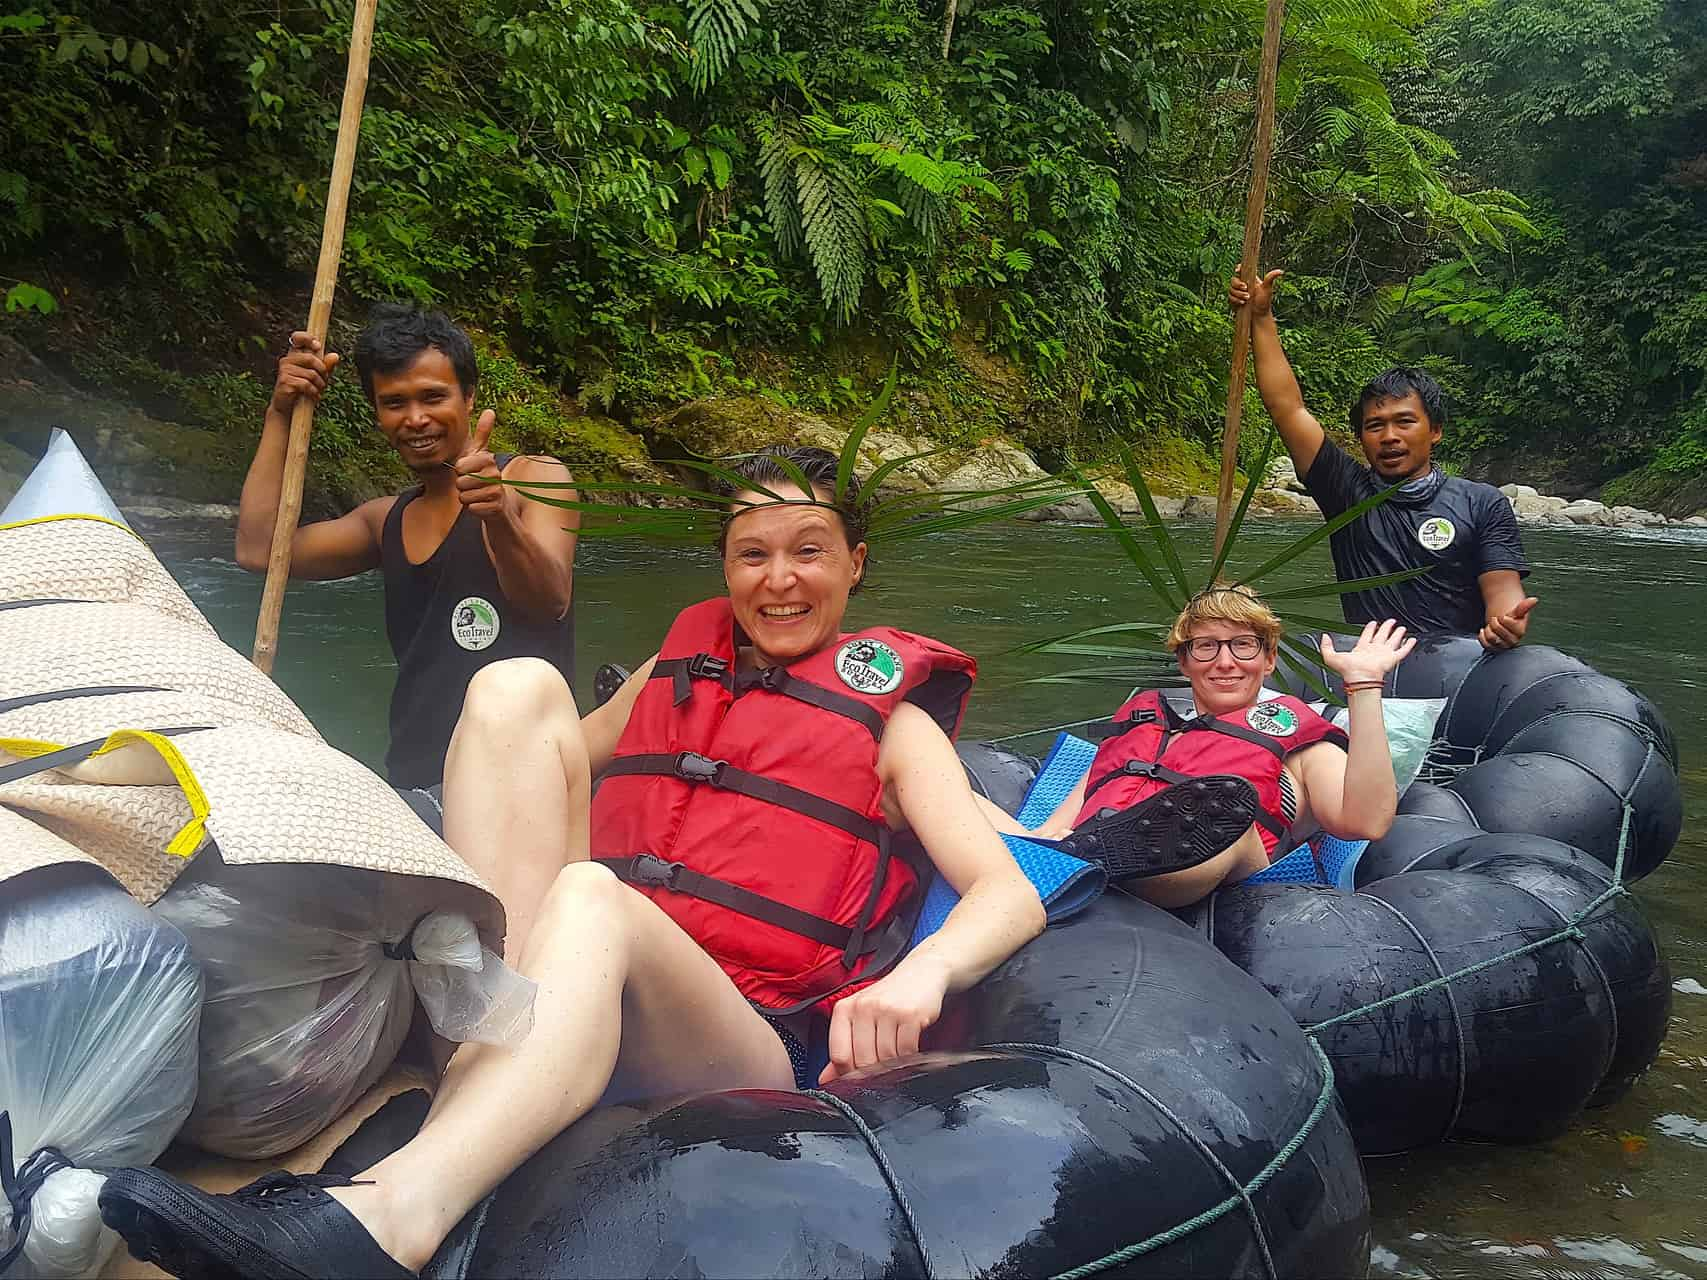 TUBE-RAFTING FUN AFTER TREKKING IN BUKIT LAWANG - SUMATRA HIGHLIGHTS BY SUMATRA ECOTRAVEL